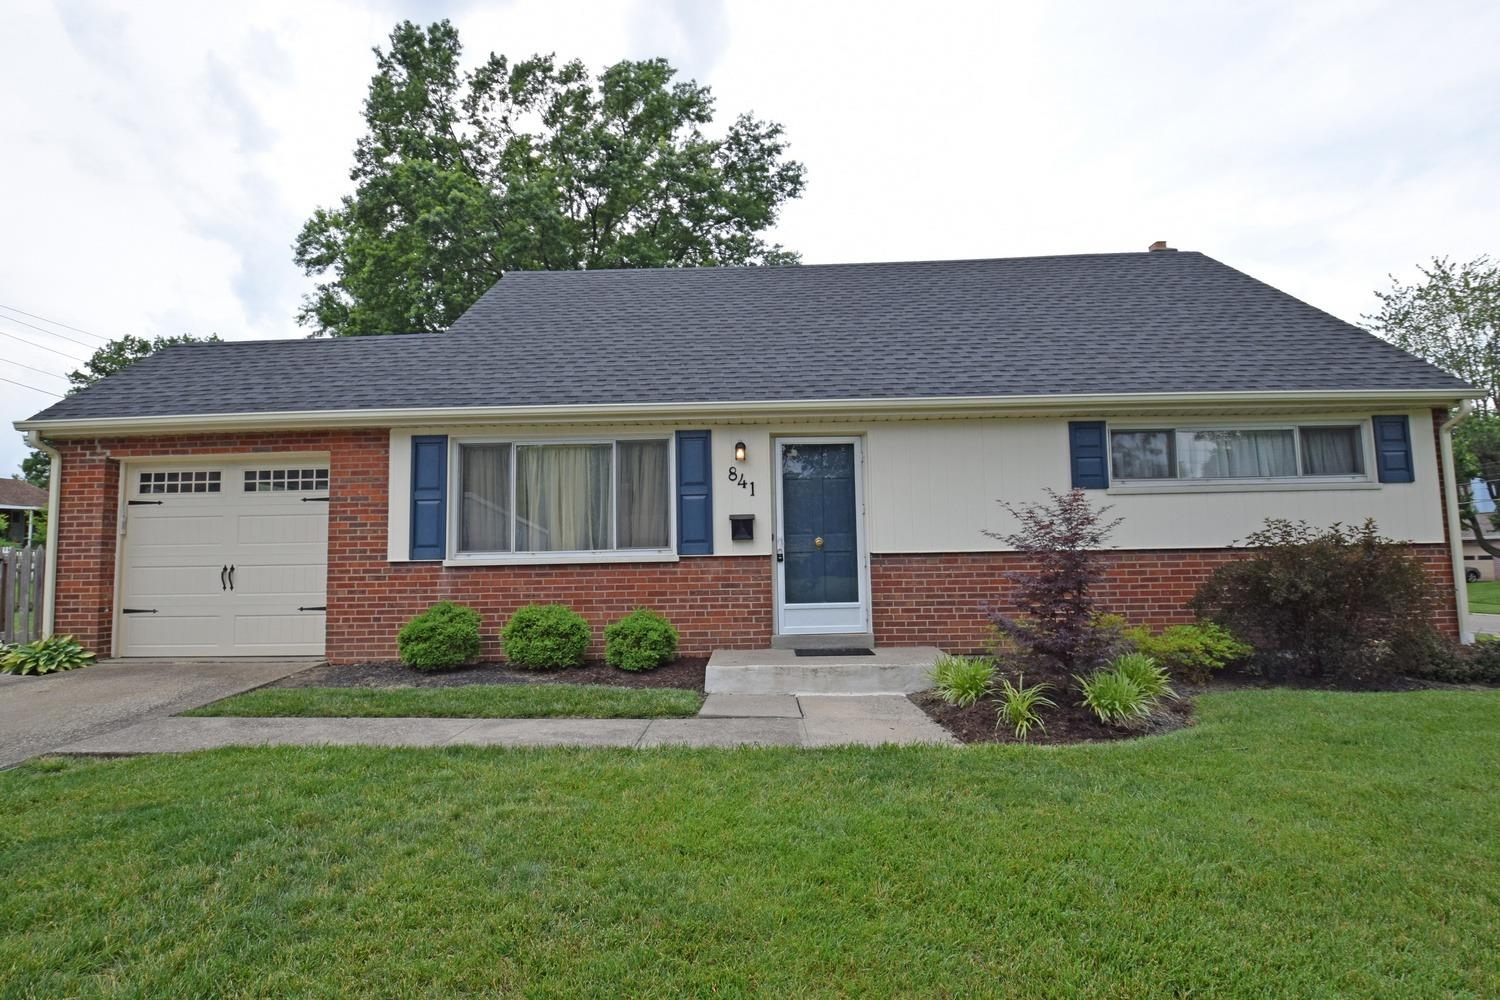 Photo 1 for 841 Sabino Ct Finneytown, OH 45231